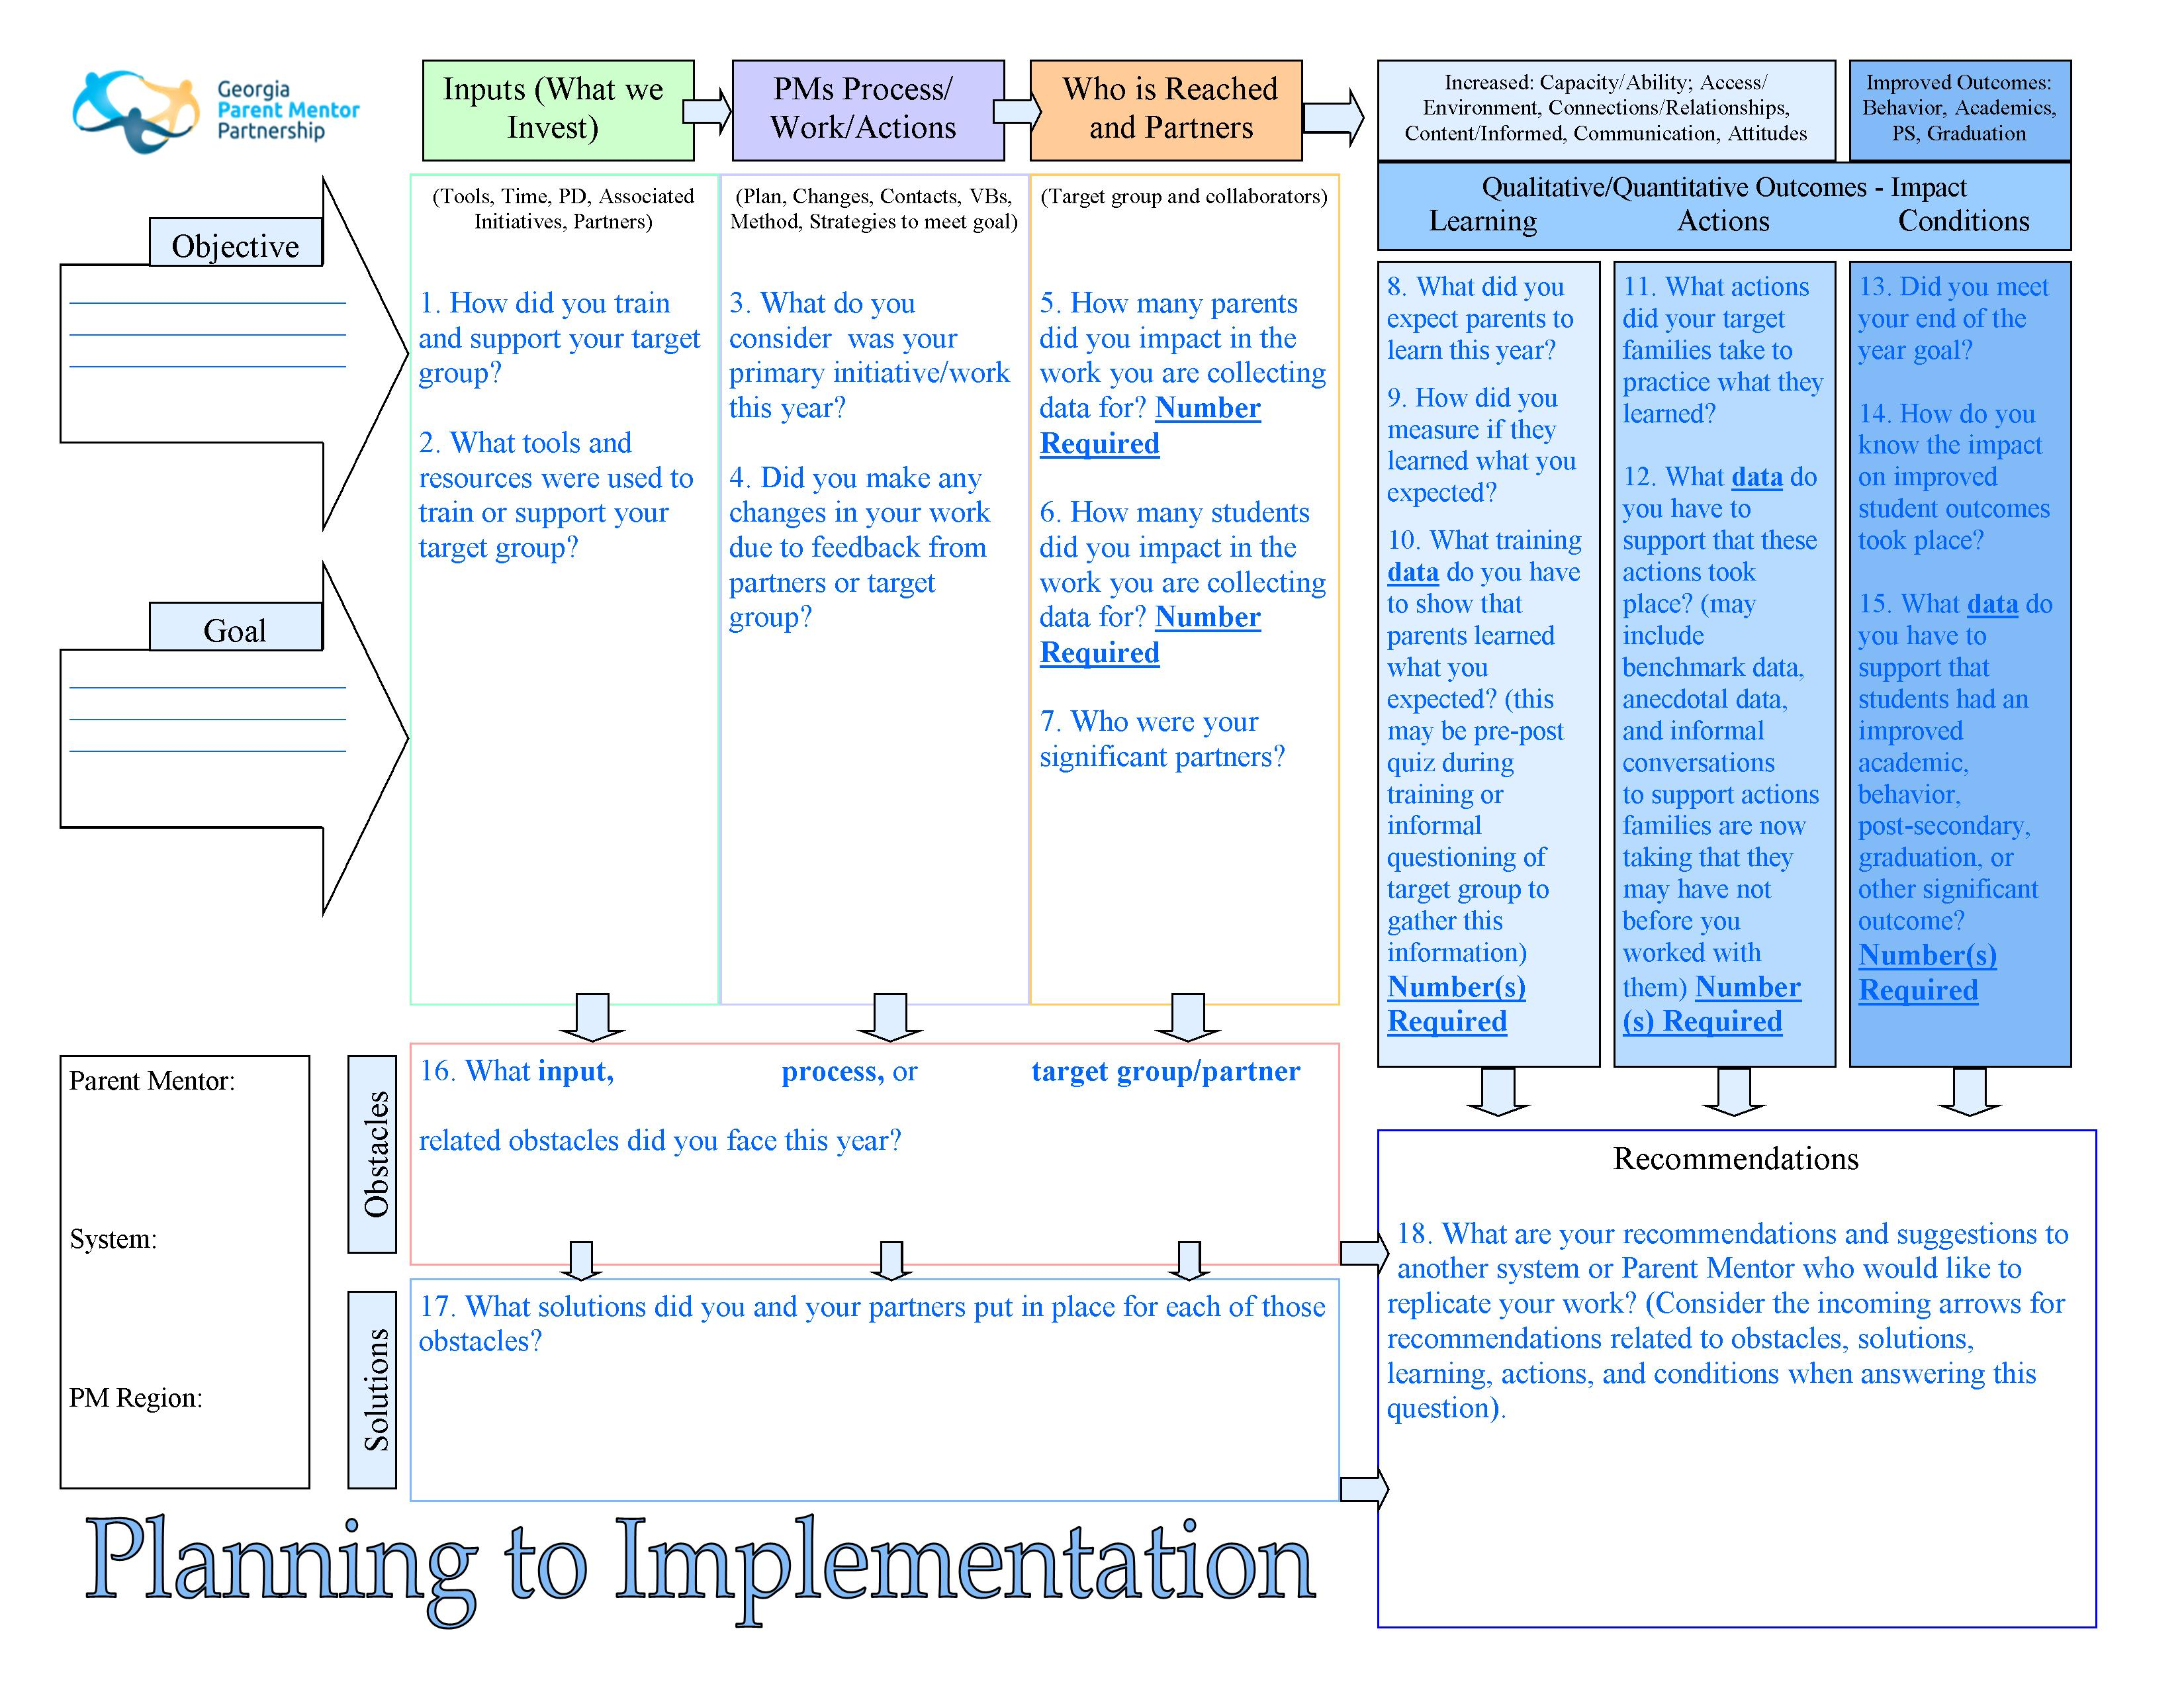 Planning to Implementation Guide Link